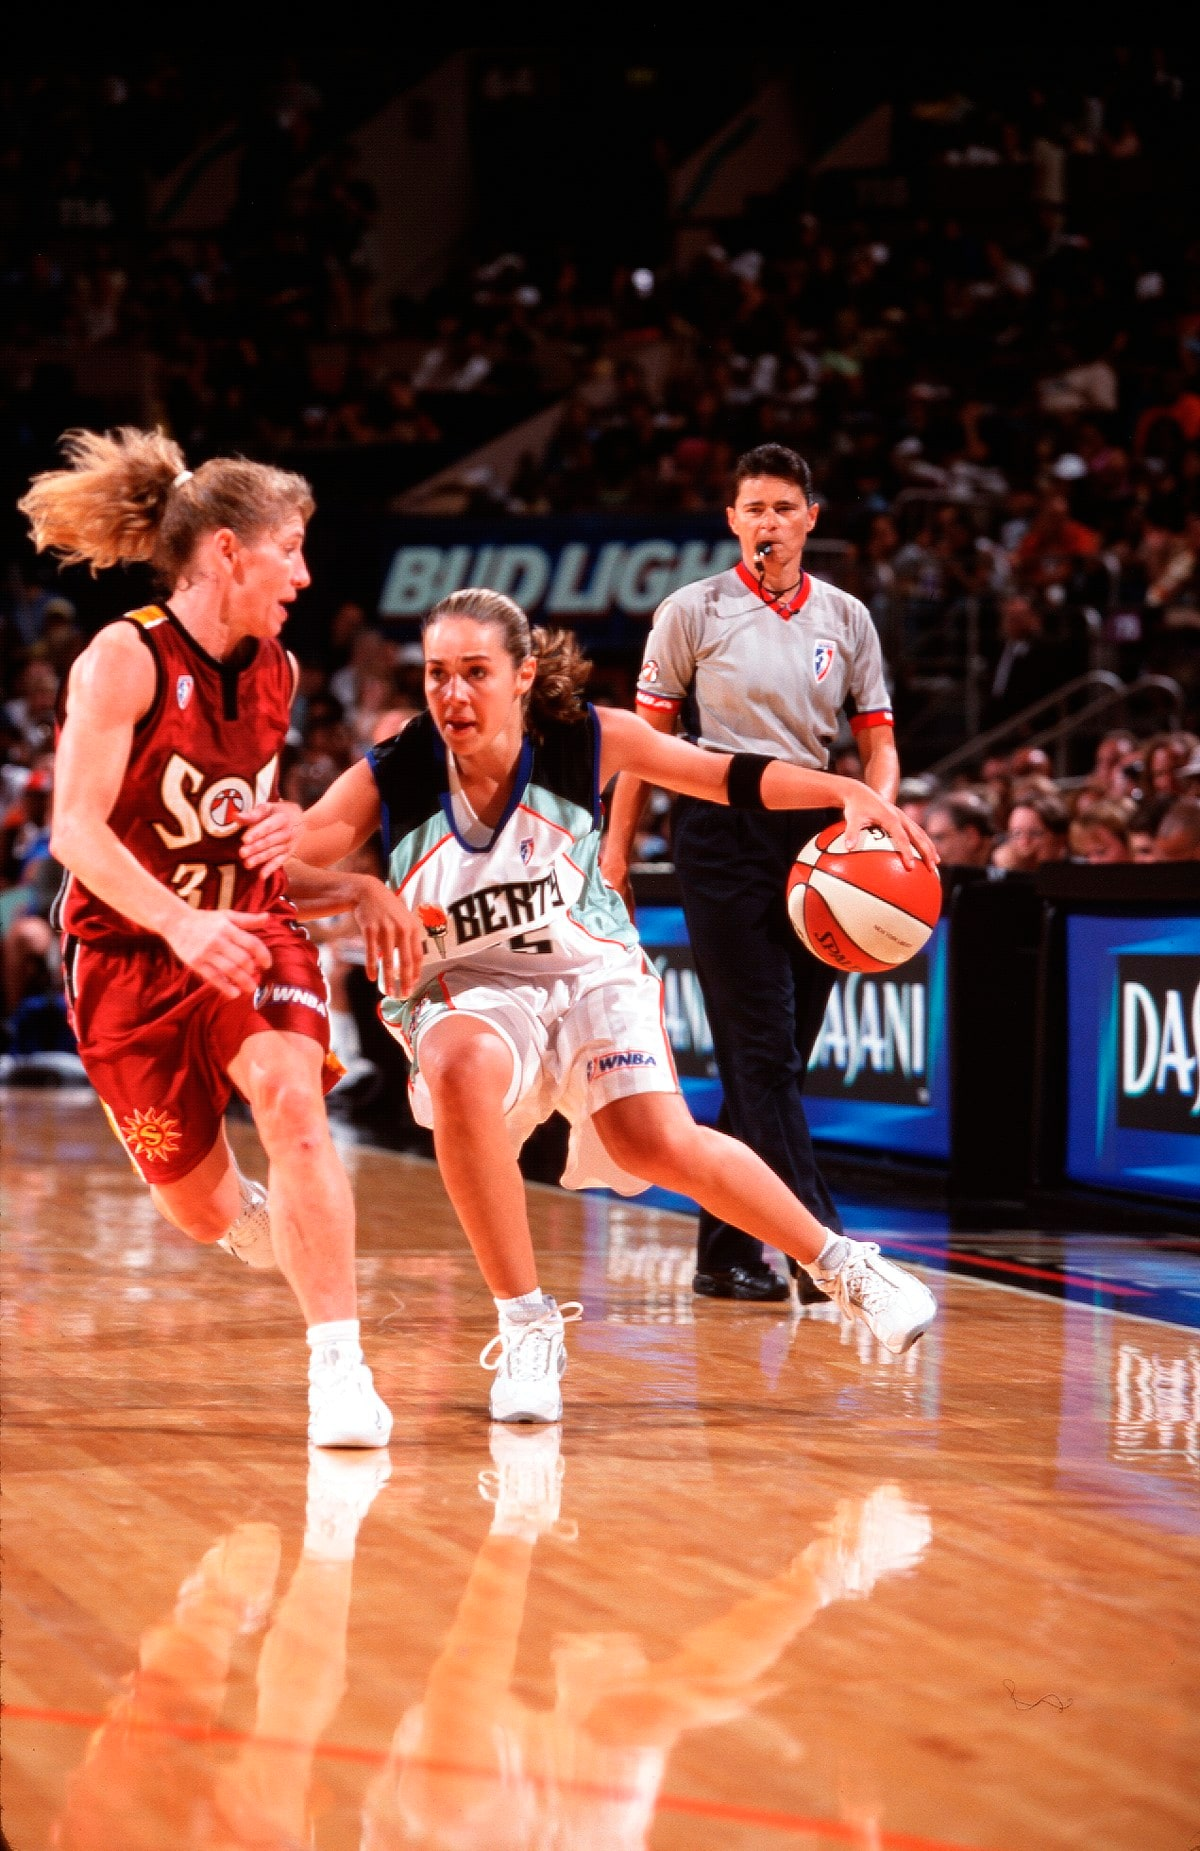 July 22, 2001; The New York Liberty lose to the Miami Sol, 52-68.